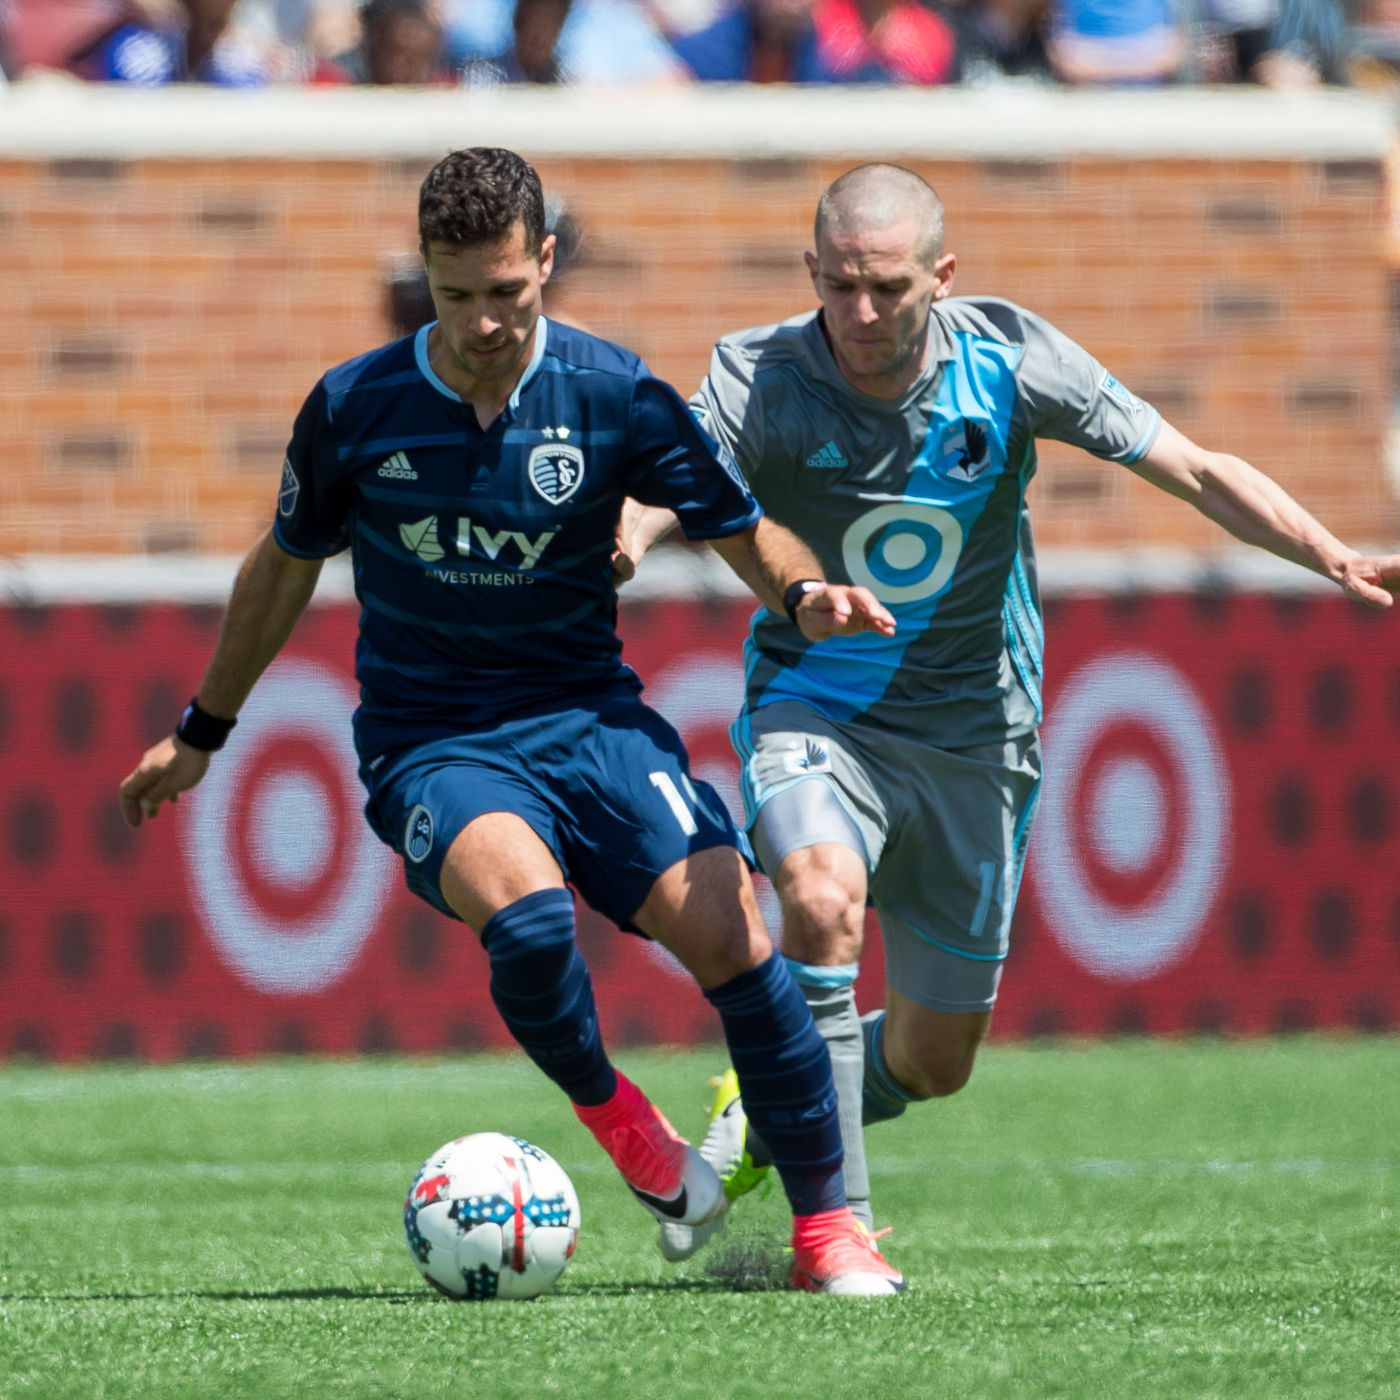 Sporting KC v Minnesota United: Preview, Predictions, Injuries